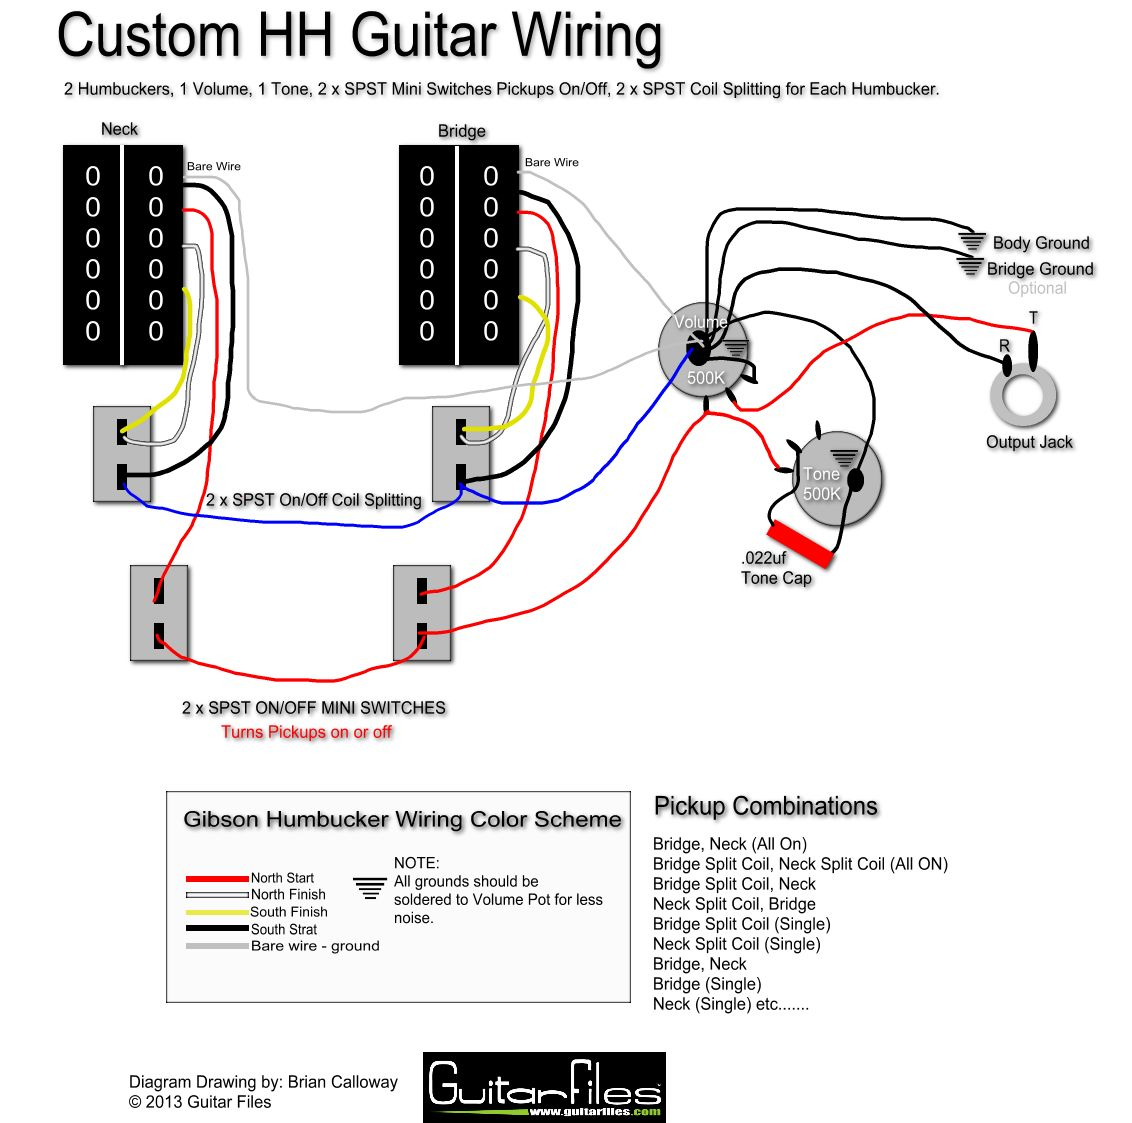 Guitar Wiring Diagrams Coil Split Worksheet And Diagram Les Paul Pot Custom Hh With Spst Splitting Switching Rh Pinterest Com